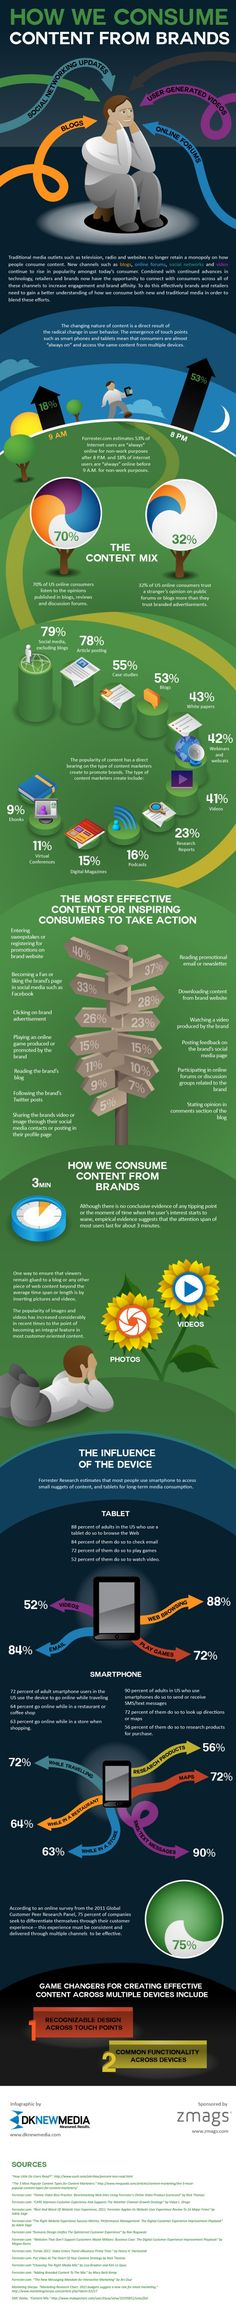 How We Consume Content From Brands